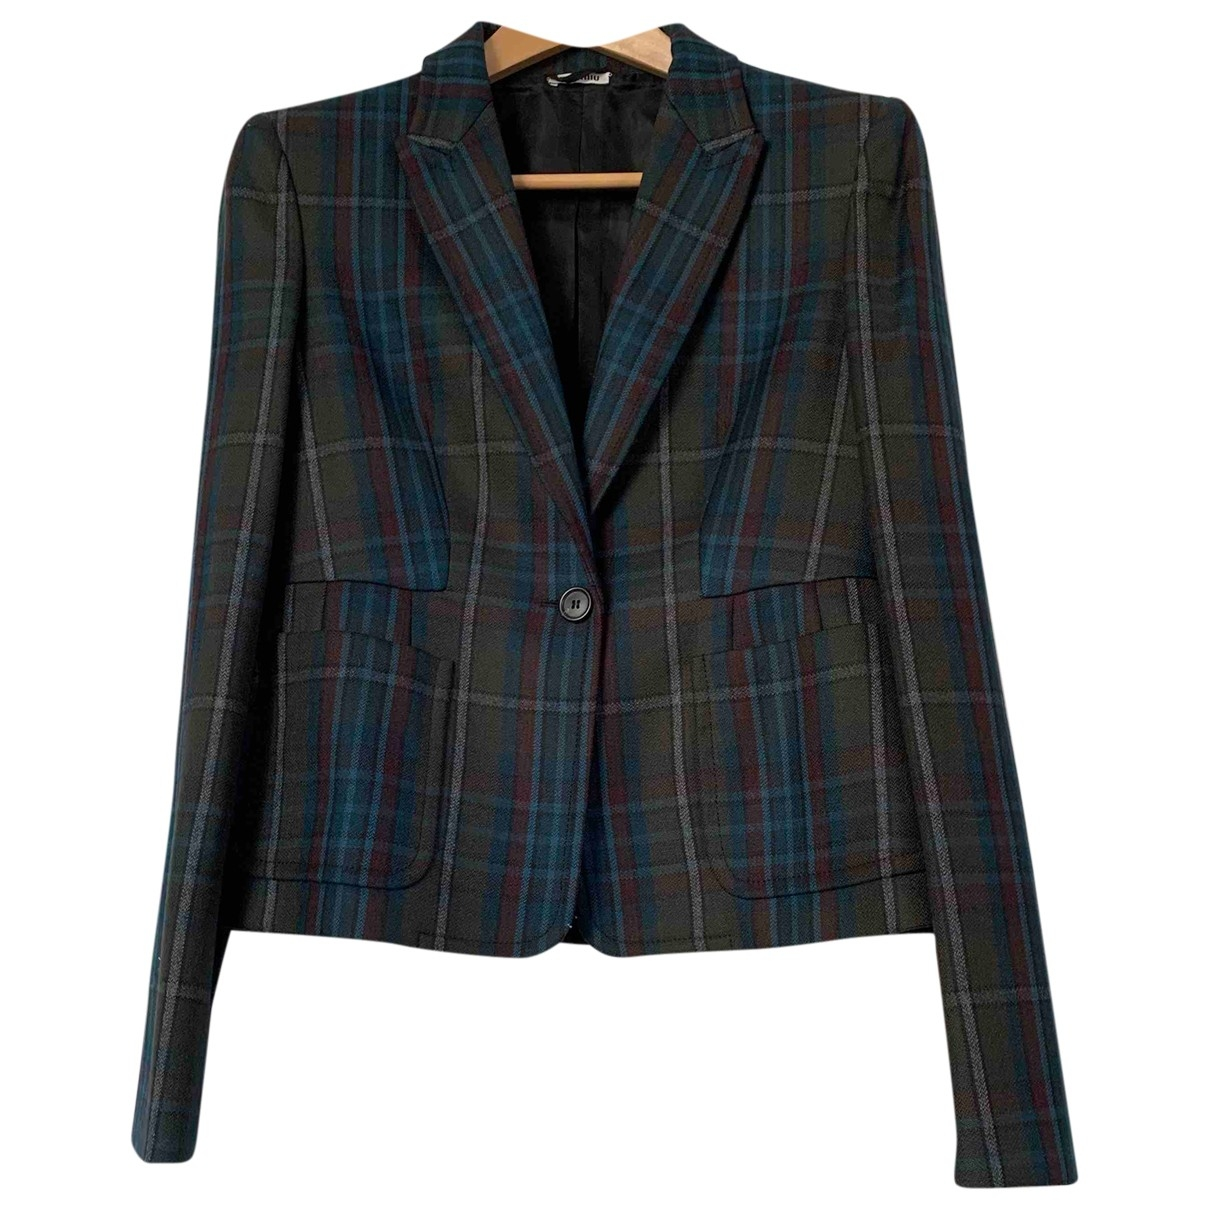 Miu Miu \N Wool jacket for Women 44 FR